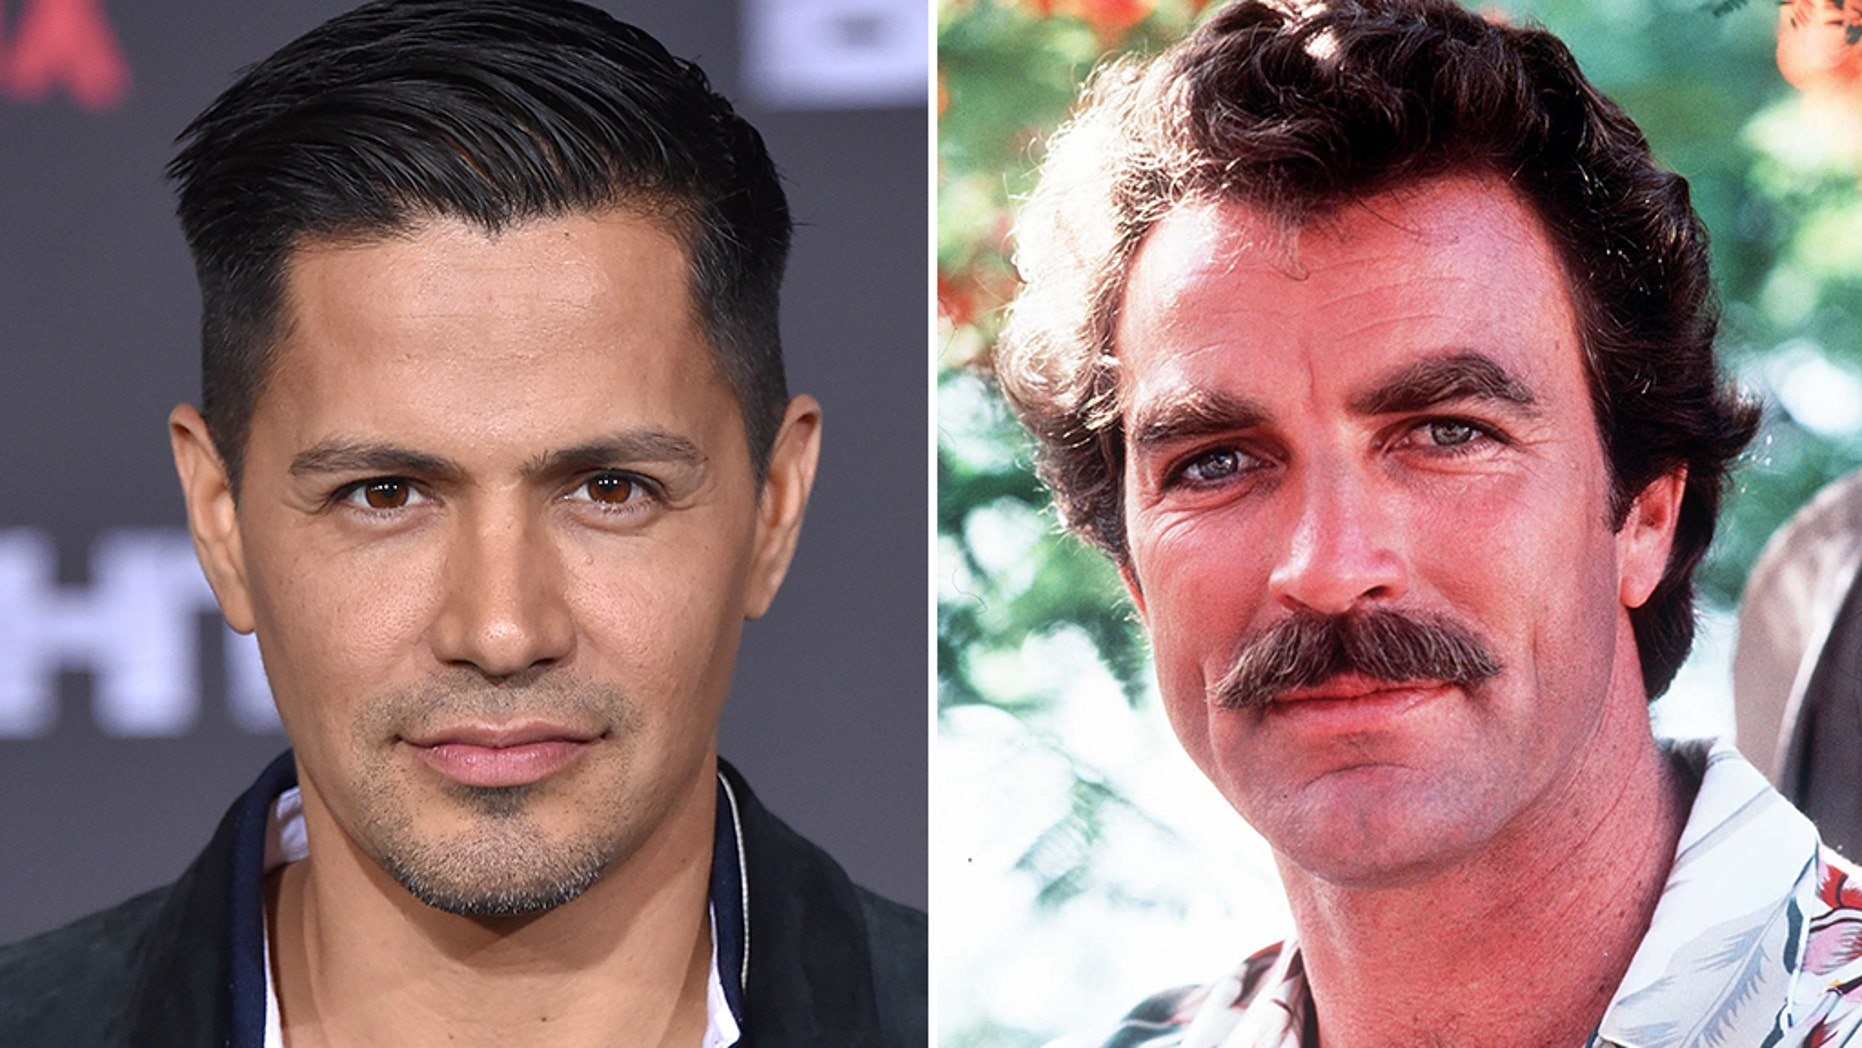 Tom Selleck 'gave his blessing' for 'Magnum P.I.' reboot, star says